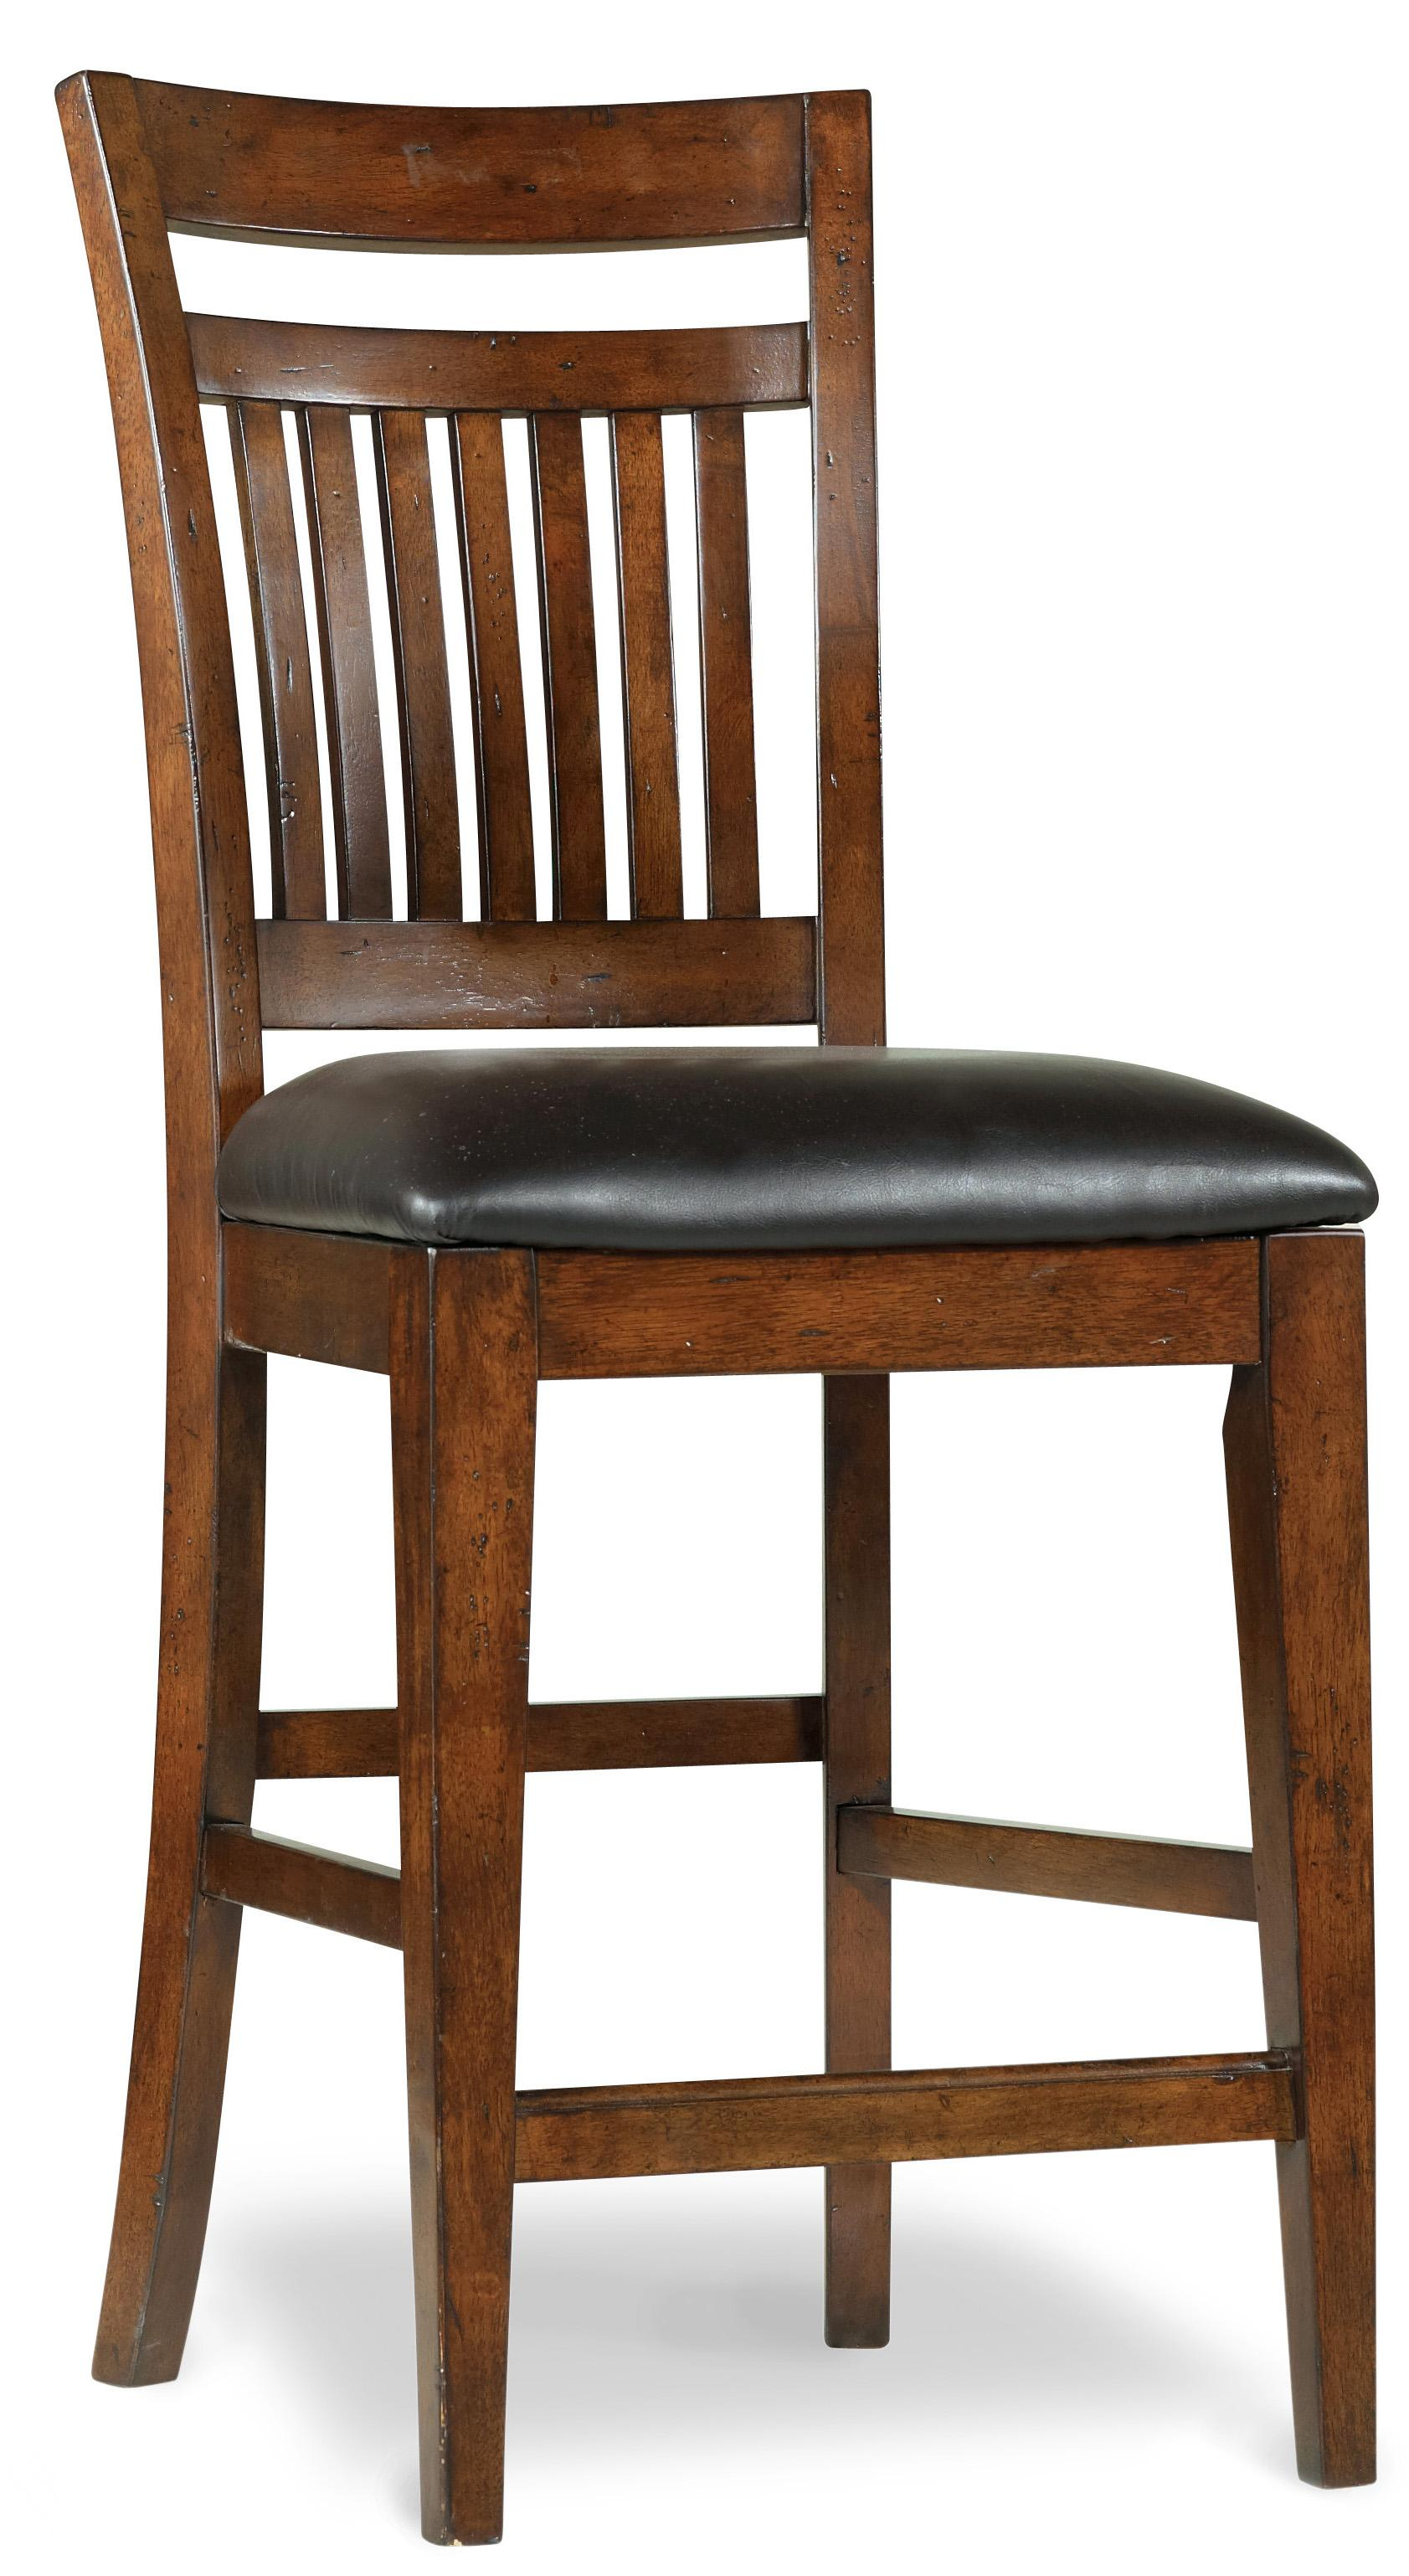 Hooker Furniture Wendover Counter Height Chair - Item Number: 1037-31222